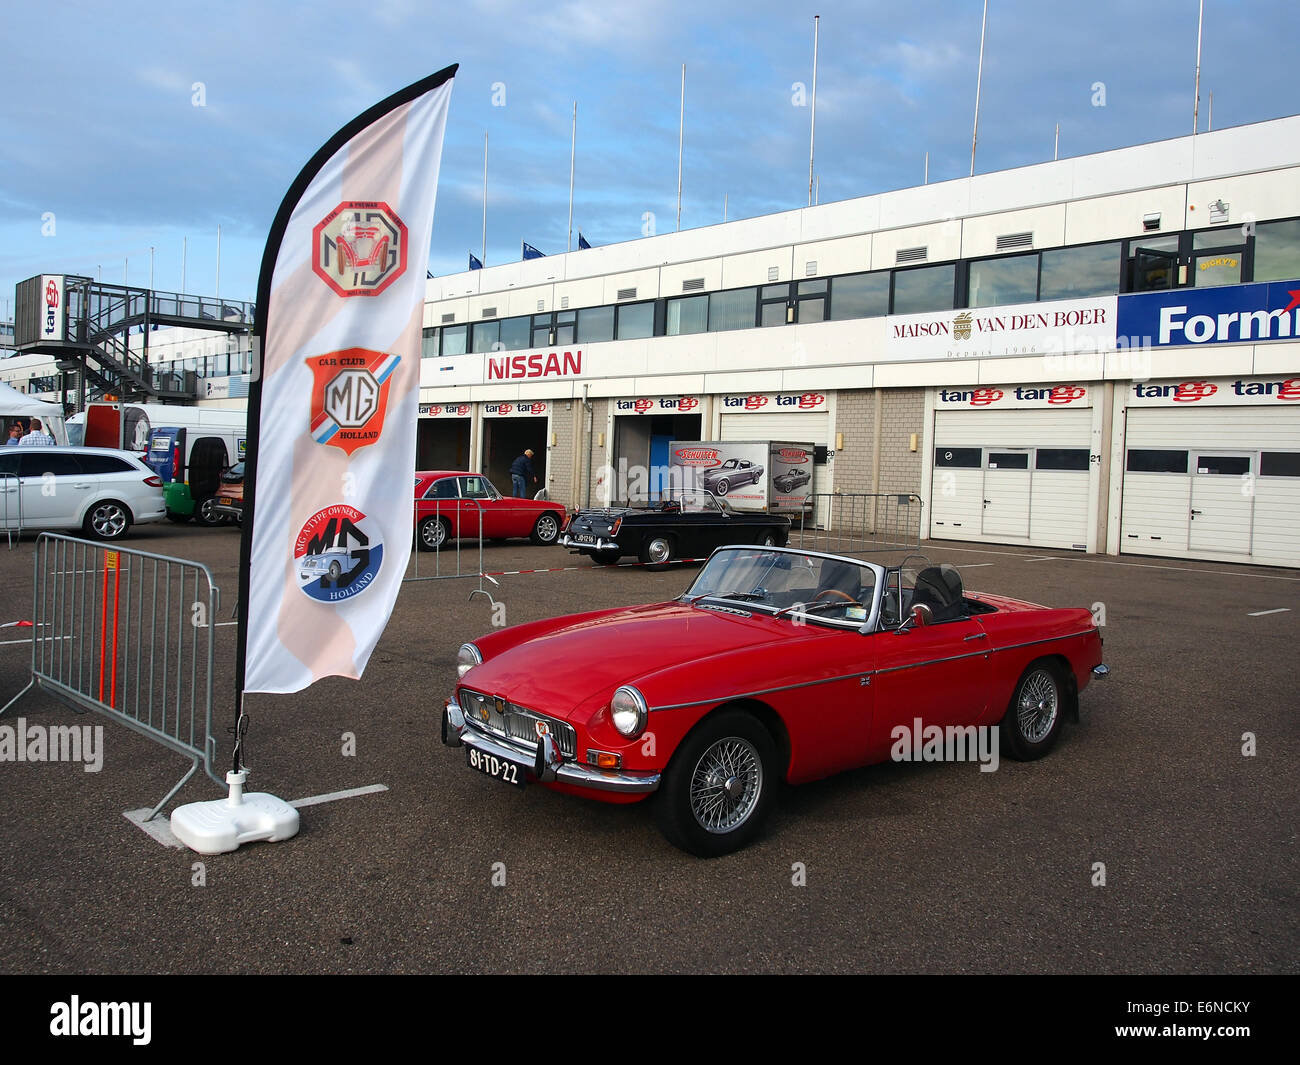 MG stand at the National Oldtimer Festival Zandvoort 2014 - Stock Image